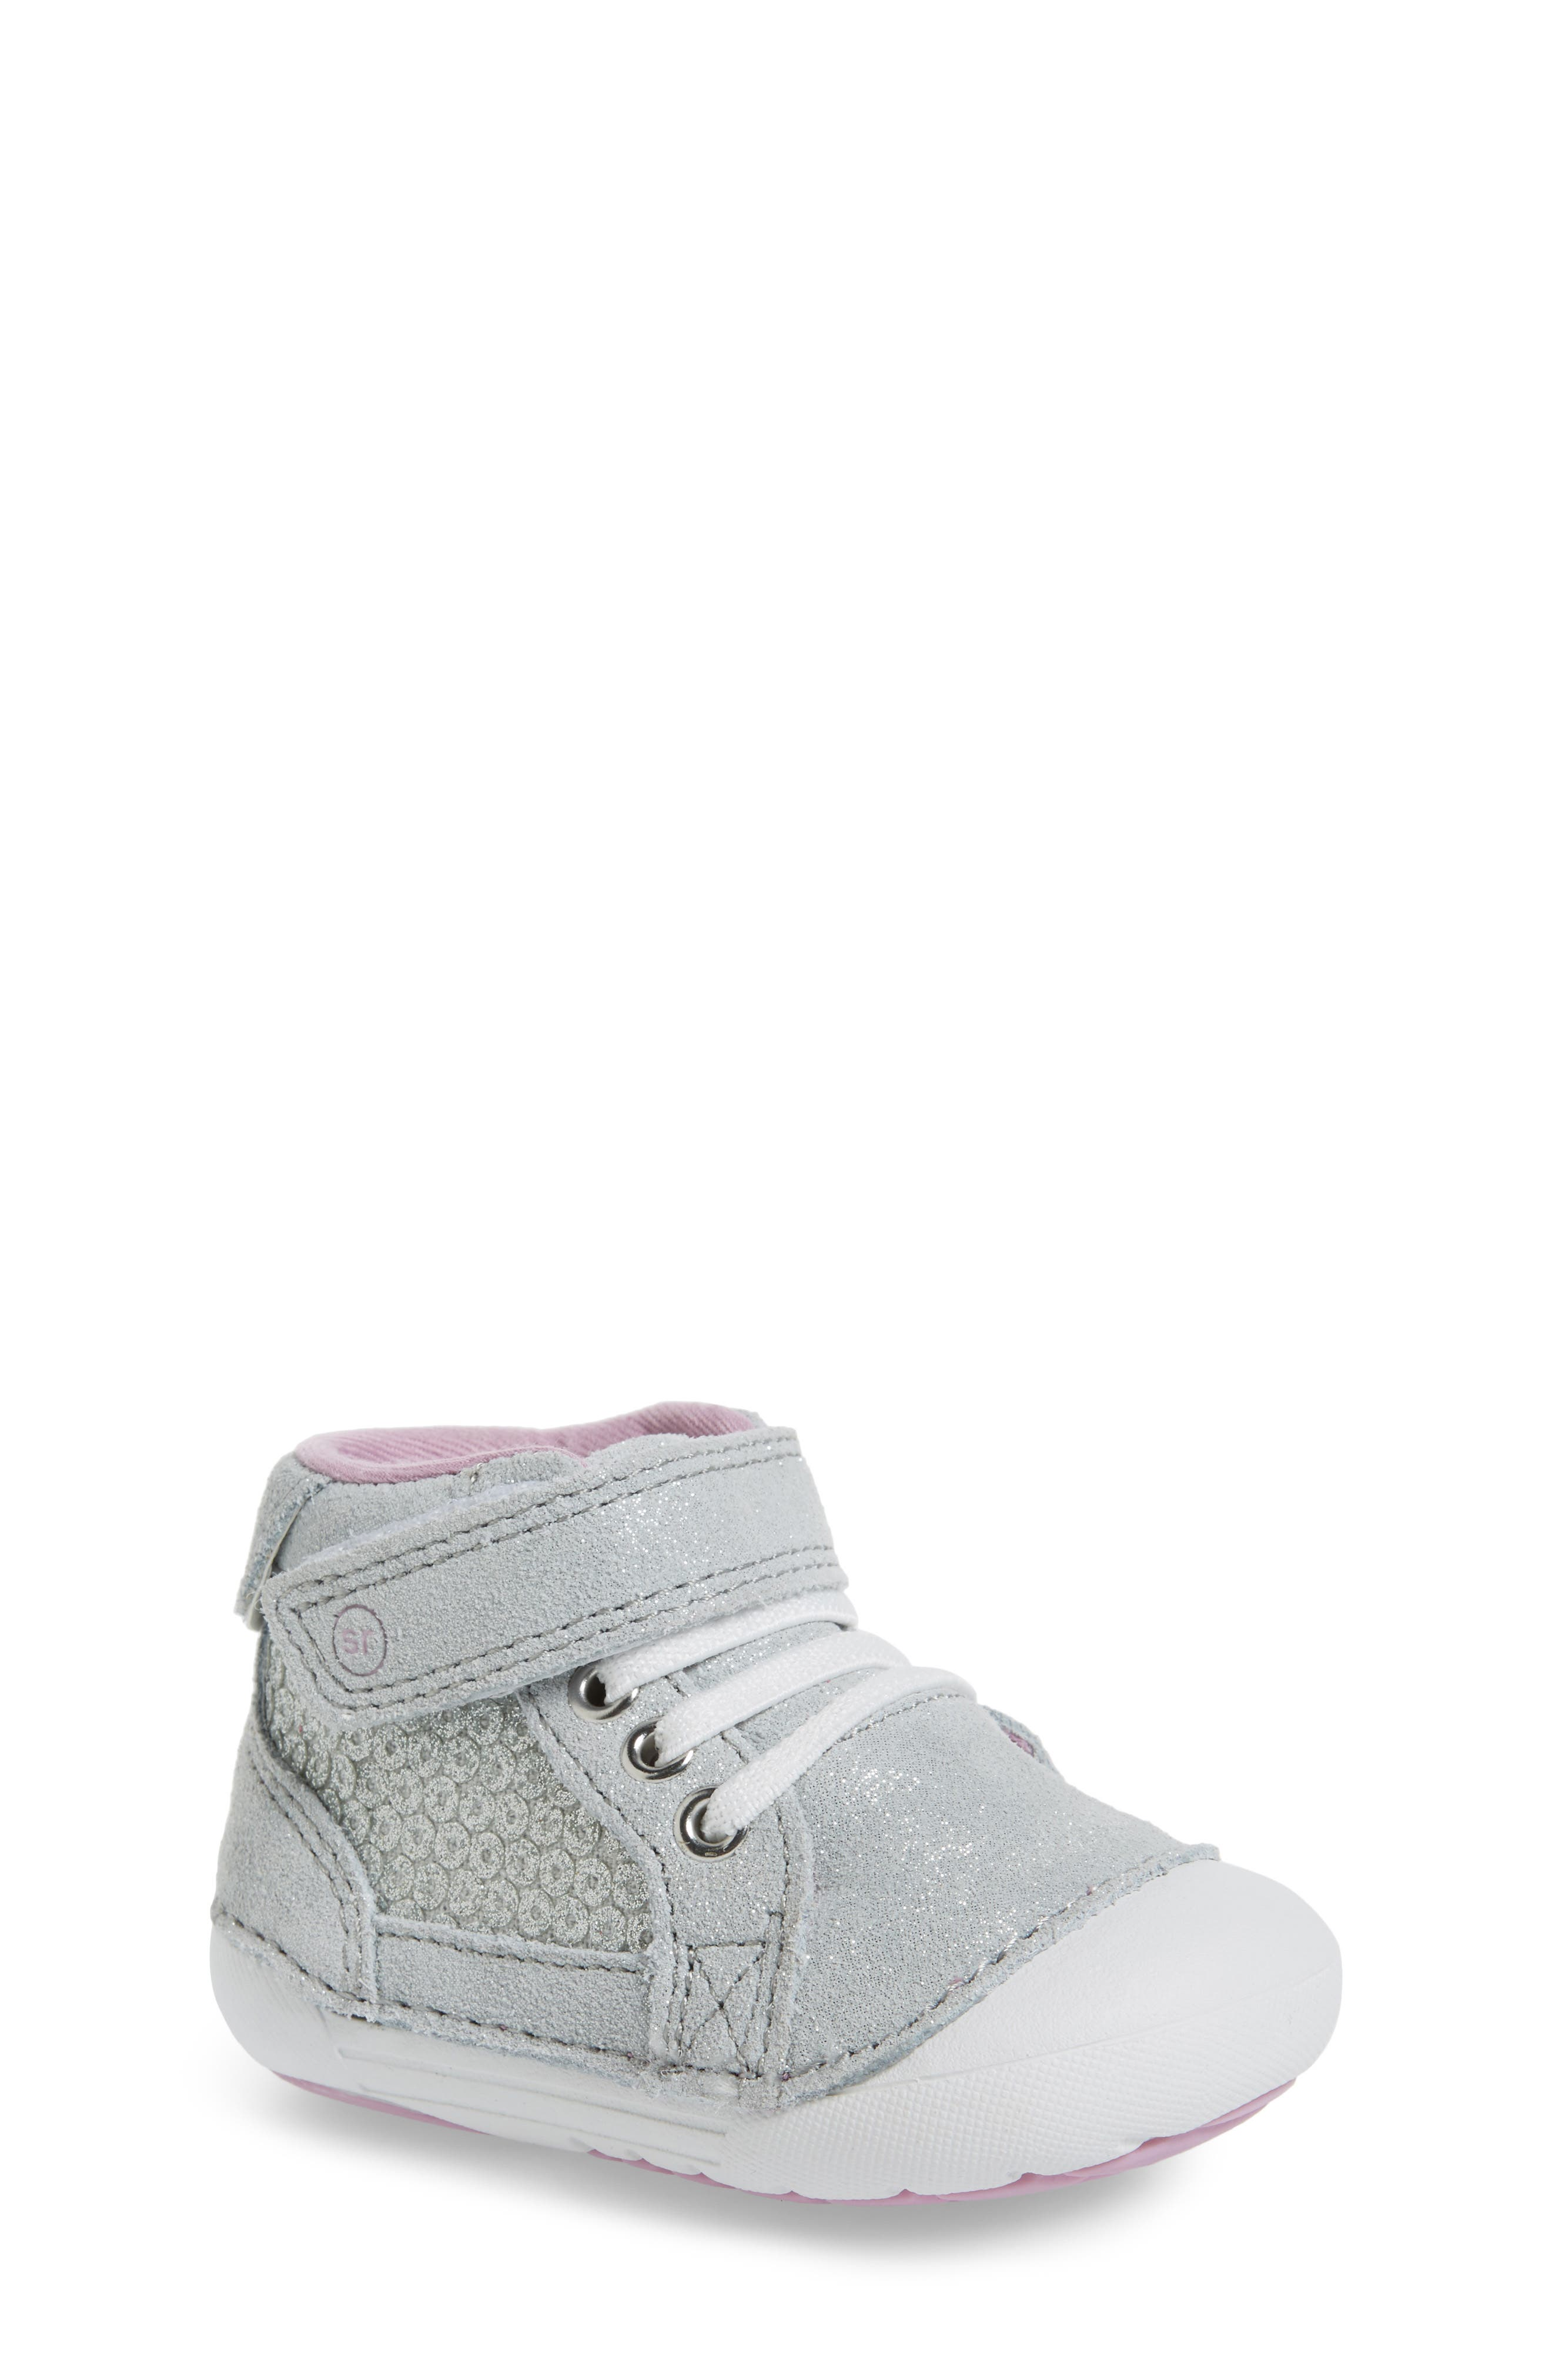 Stride Rite Soft Motion™ Jada High Top Sneaker (Baby & Walker)